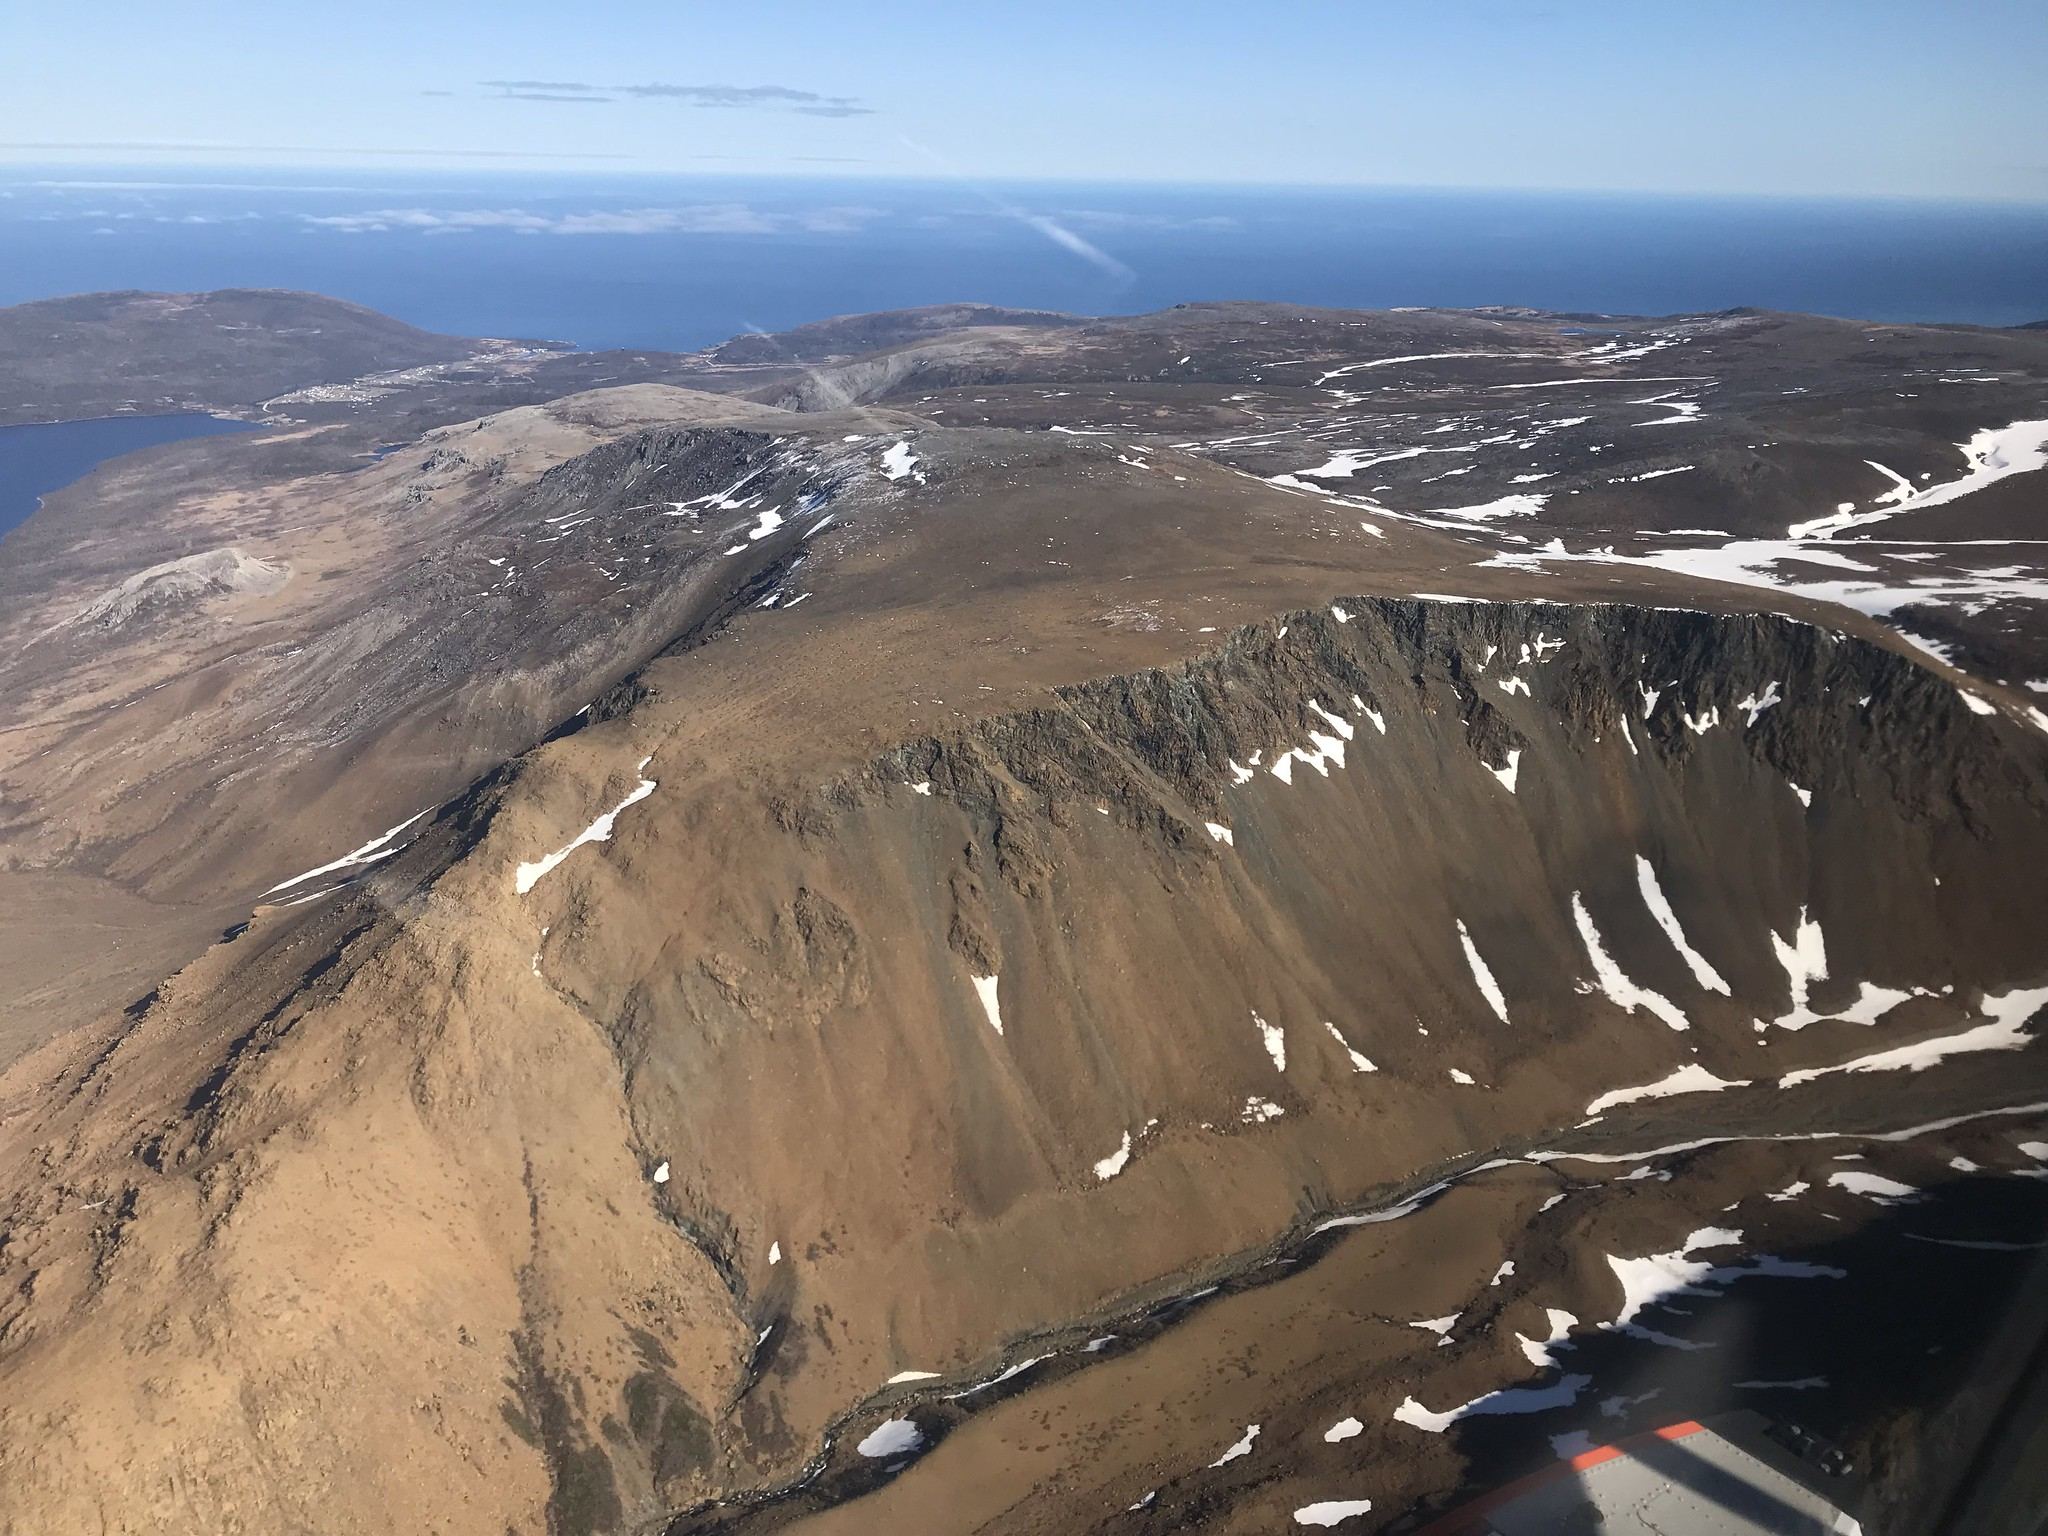 Dramatic scenery in and around Gros Morne National Park, Newfoundland, May 2018 Photo Credit: USFWS